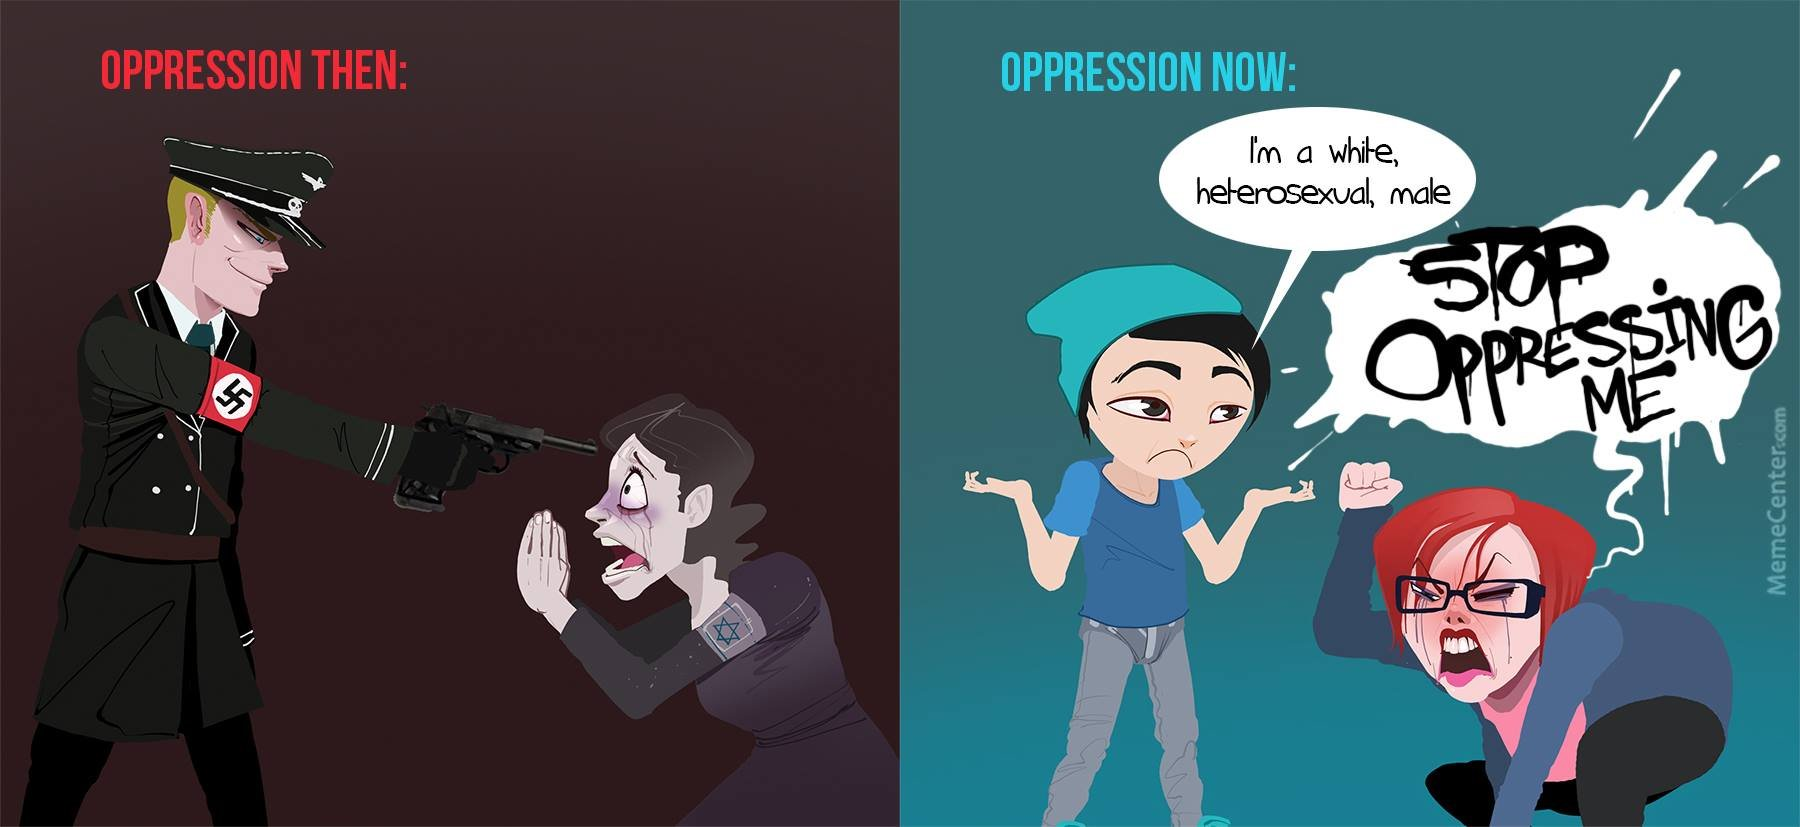 oppression and the oppressed An orientation packet handed out to freshmen at cornell university this year separates privileged from oppressed students the packet, which was first reported on by campus reform, shows a list of identity markers that allegedly determine whether a student is privileged or.